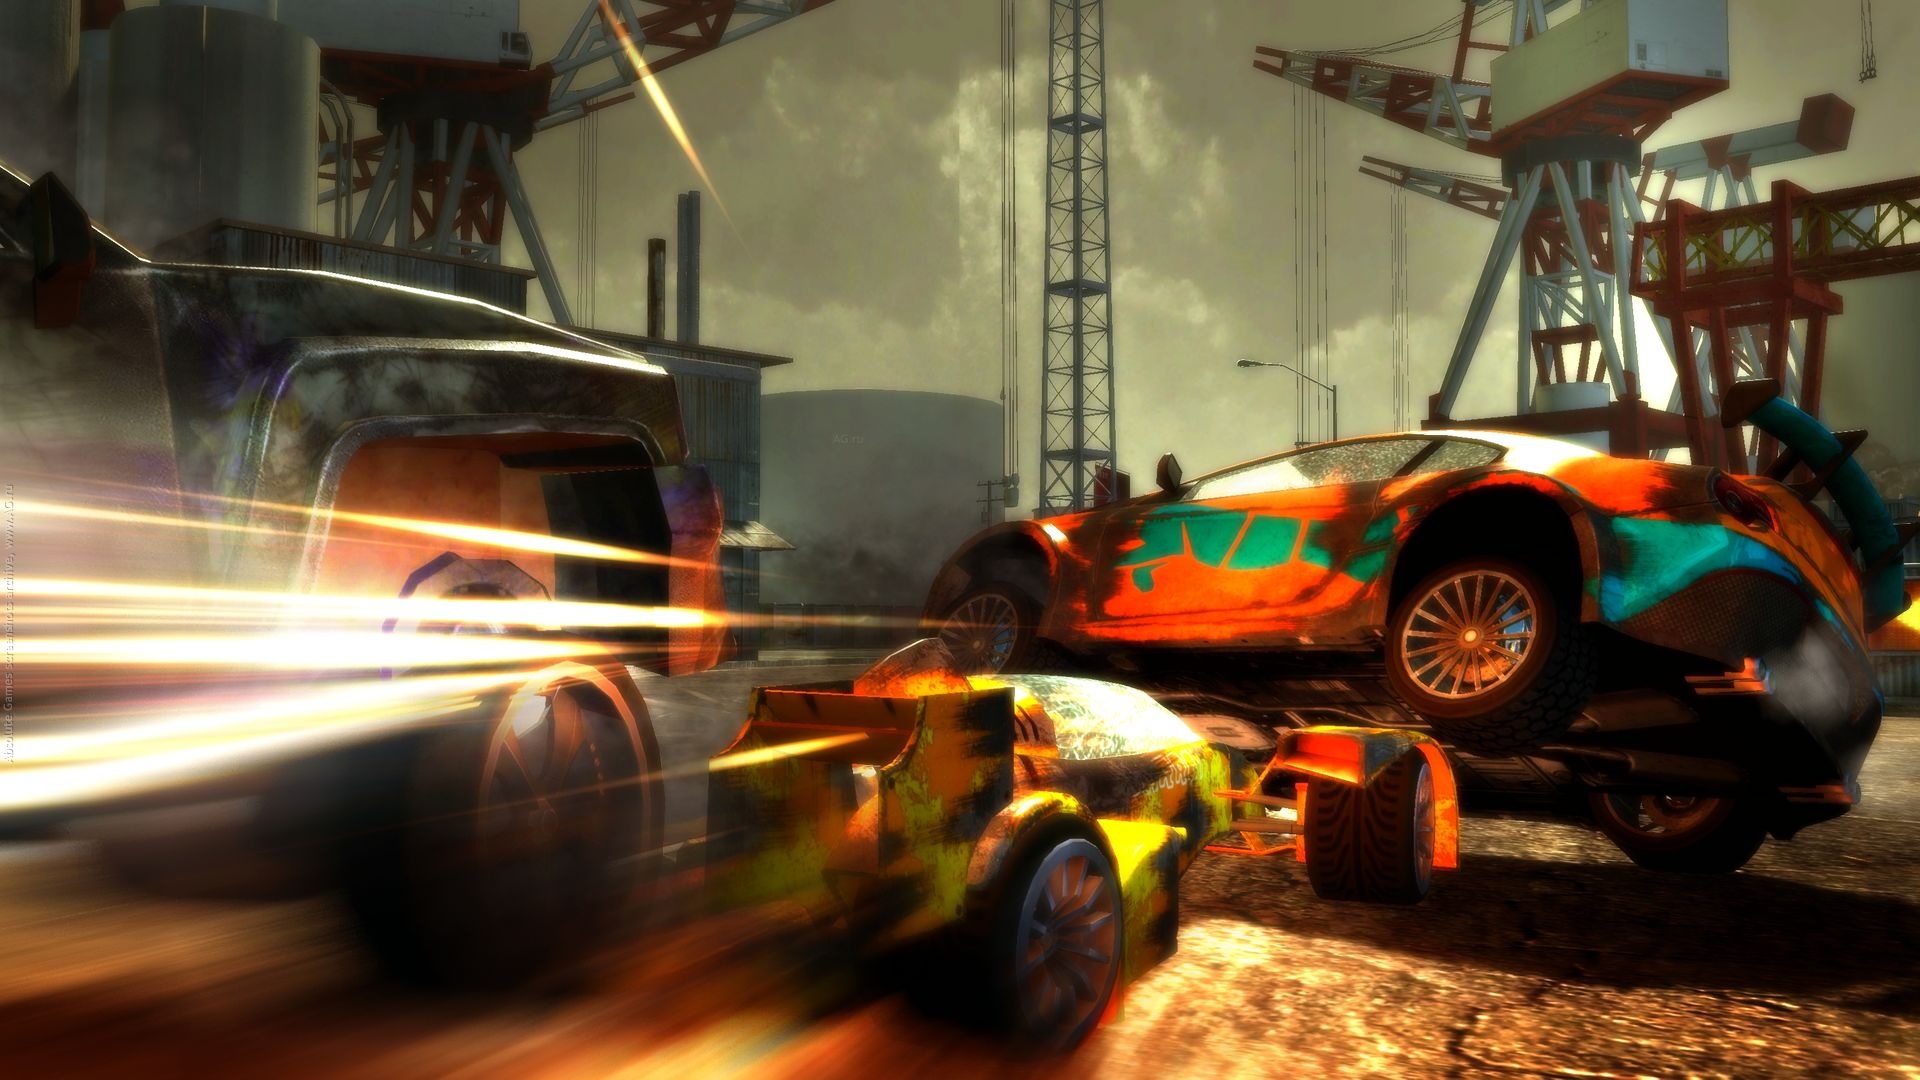 FlatOut 3 Chaos And Destruction-Crack RELOADED לינקים מהירים 951bace0be3f13d8c9ff7dc46ab45856